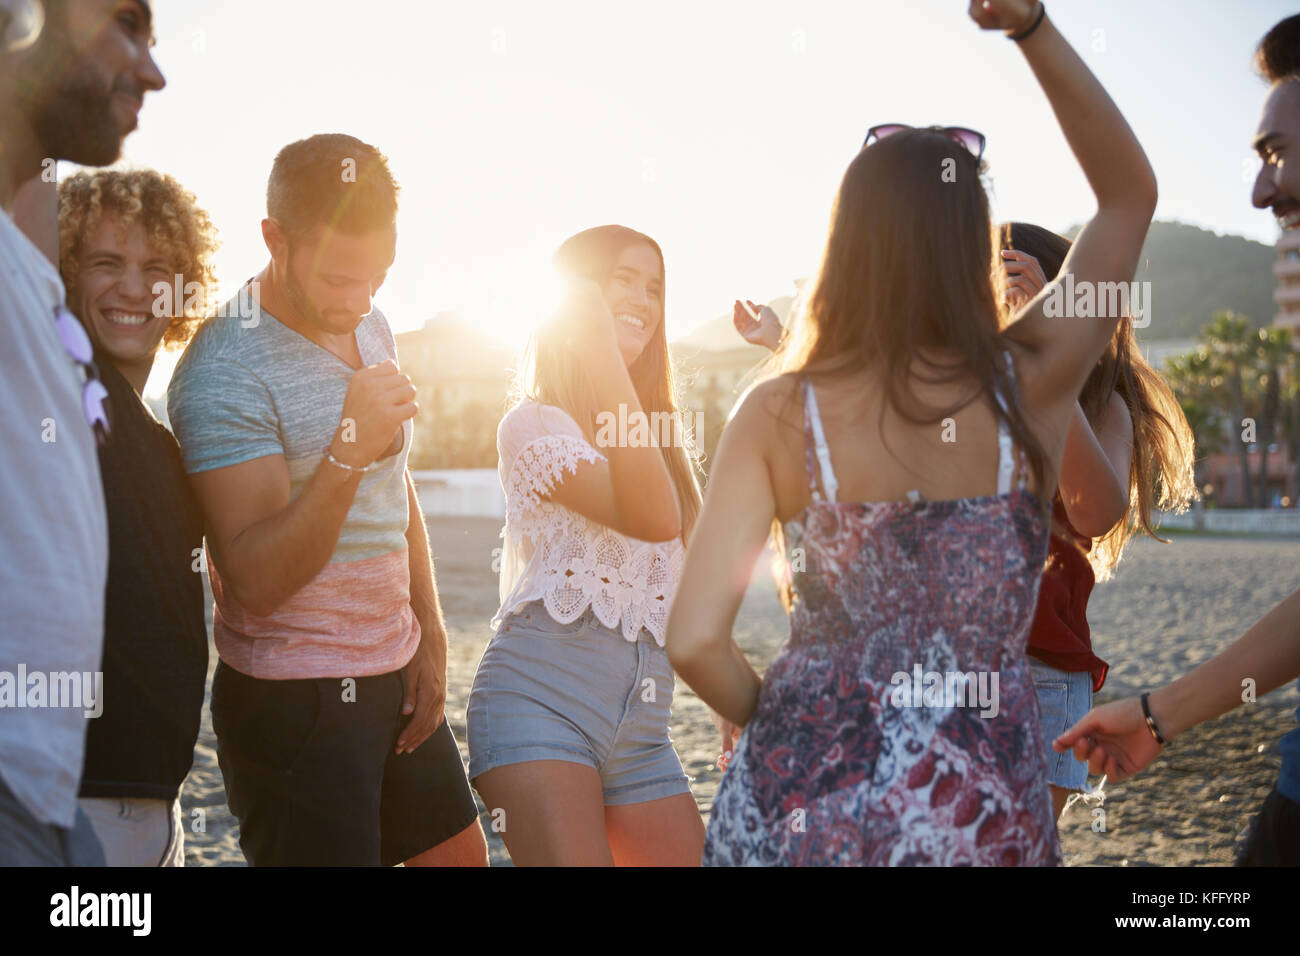 Portrait of young group of friends partying on beach - Stock Image